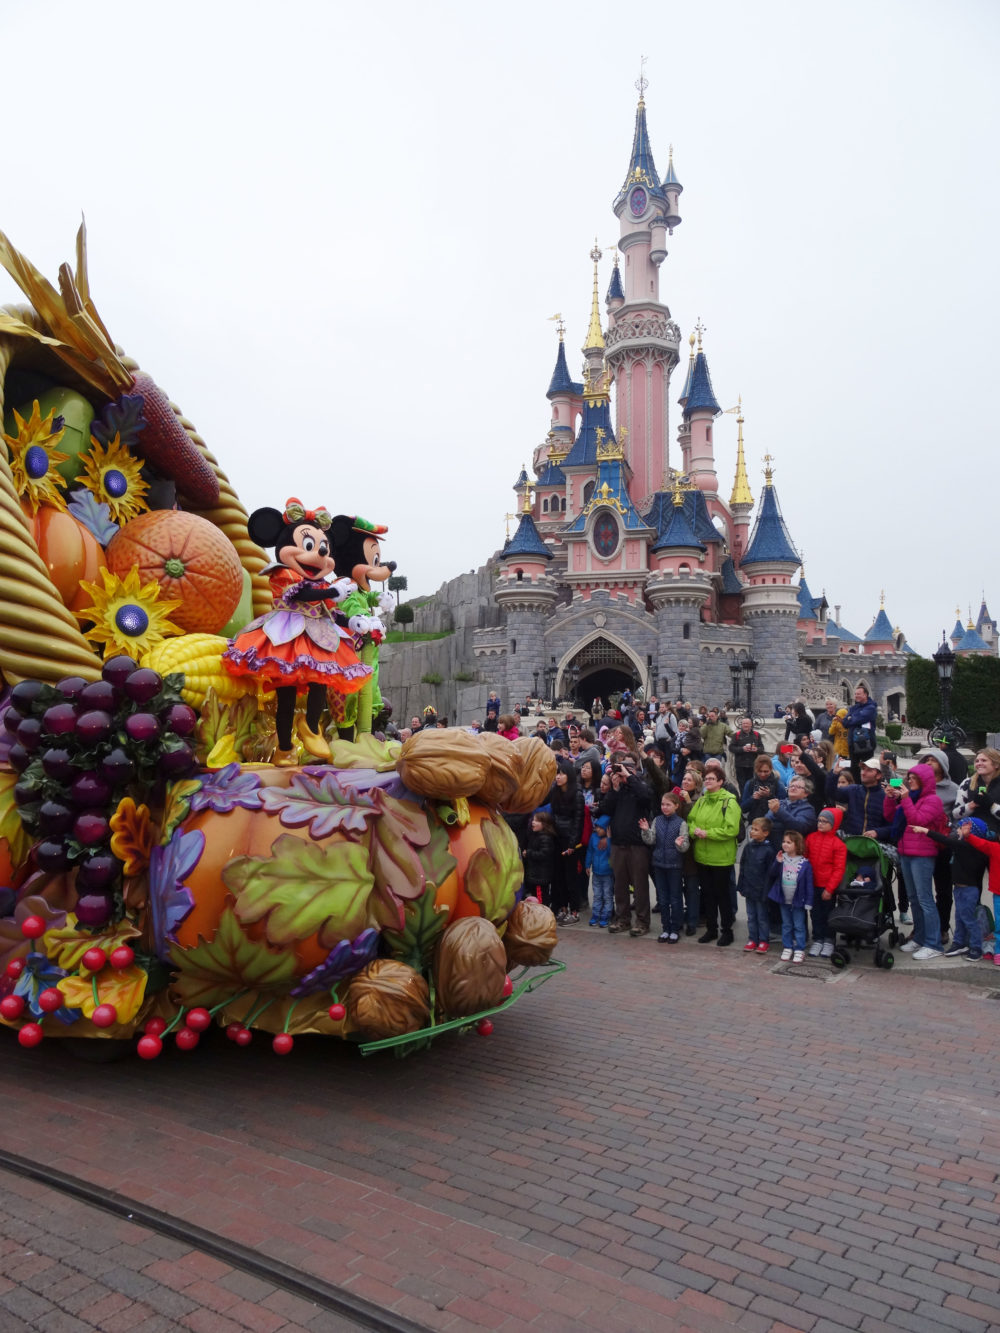 Mickey and Minnie Mouse on Parade at Disneyland Paris